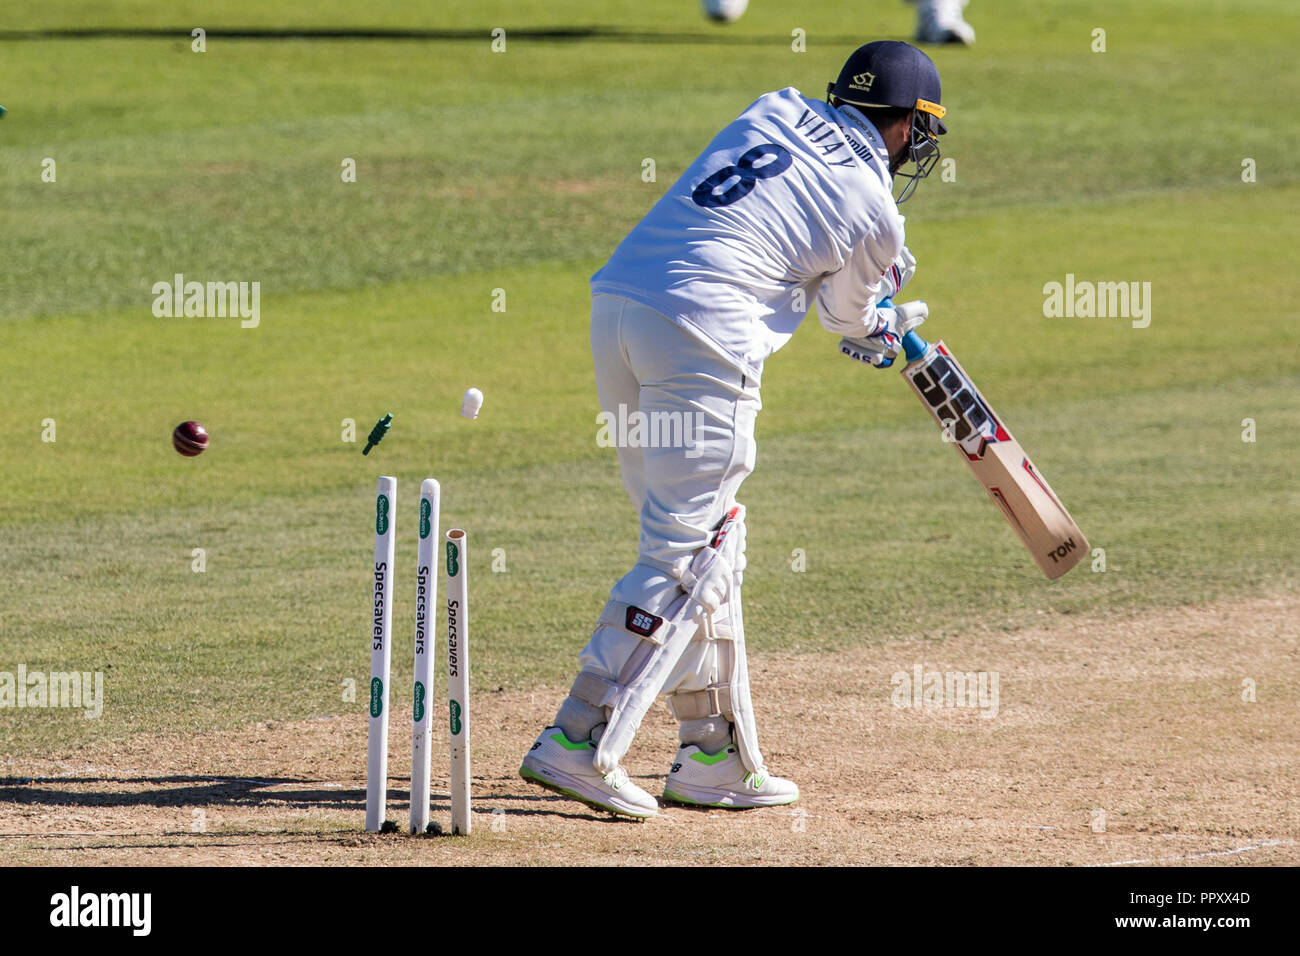 London, UK. 27 September 2018. ,Morne Morkel bowling for Surrey, gets the wicket of Murali Vijay on day four of the Specsavers County Championship game at the Oval. David Rowe/Alamy Live News. Stock Photo